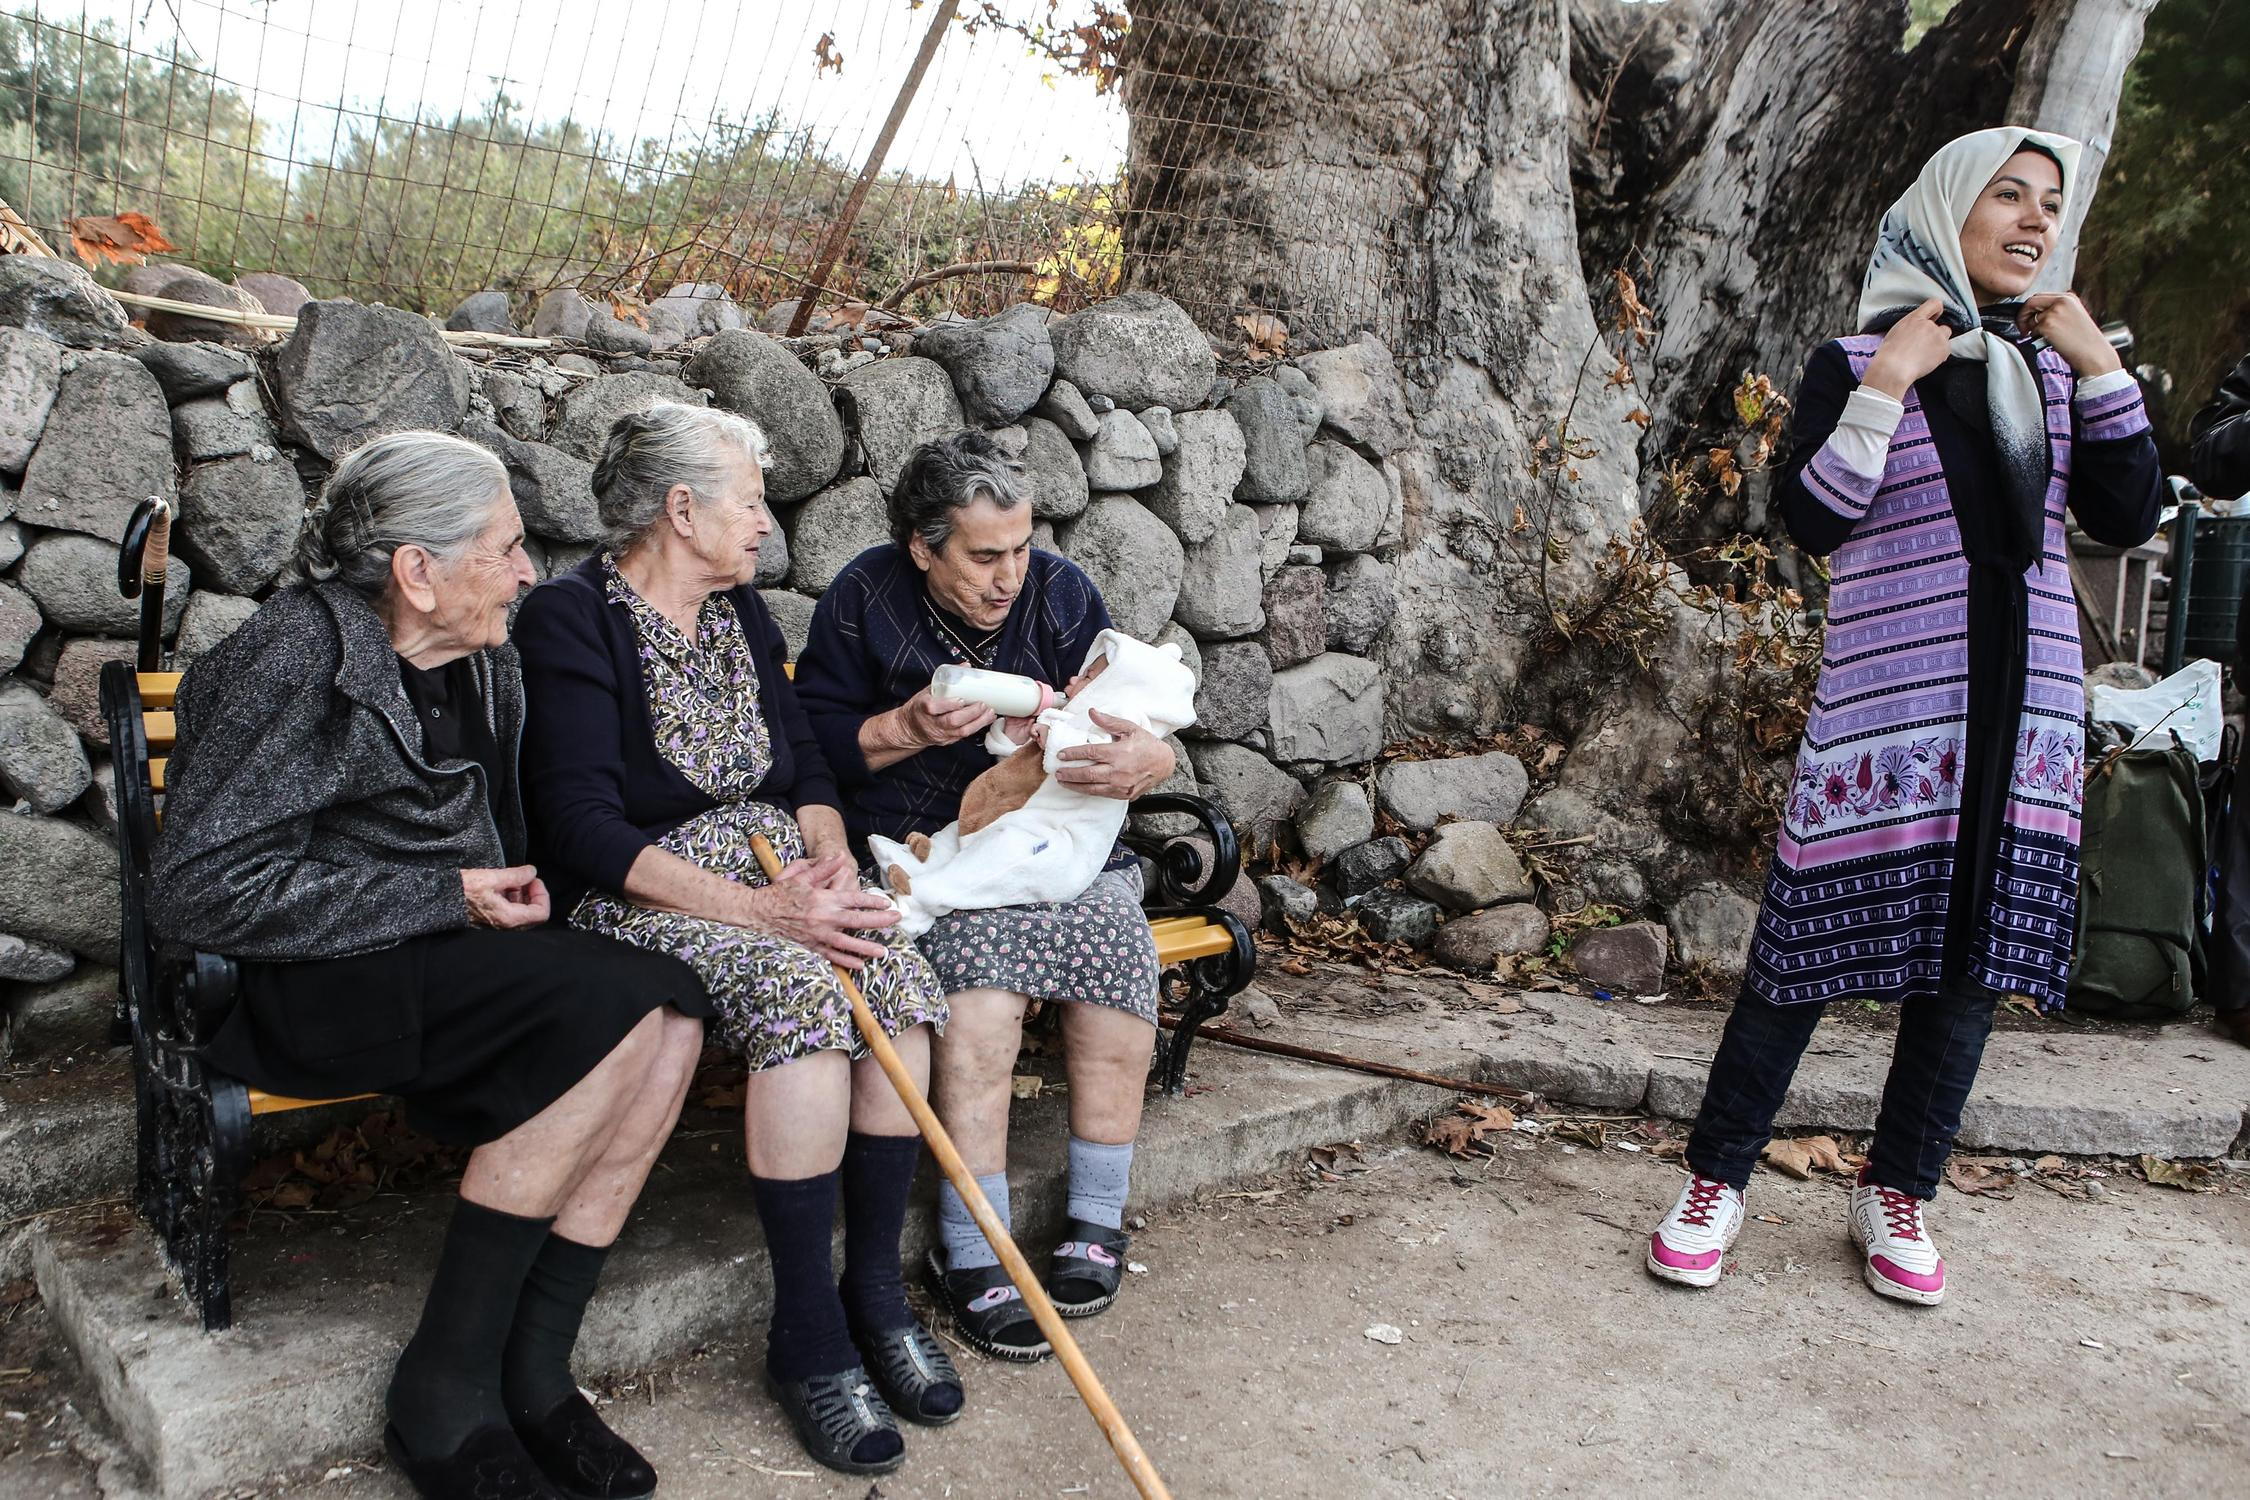 Lesbos, Greece on October 17, 2015. / Λέσβος, 17 Οκτωβρίου 2015.